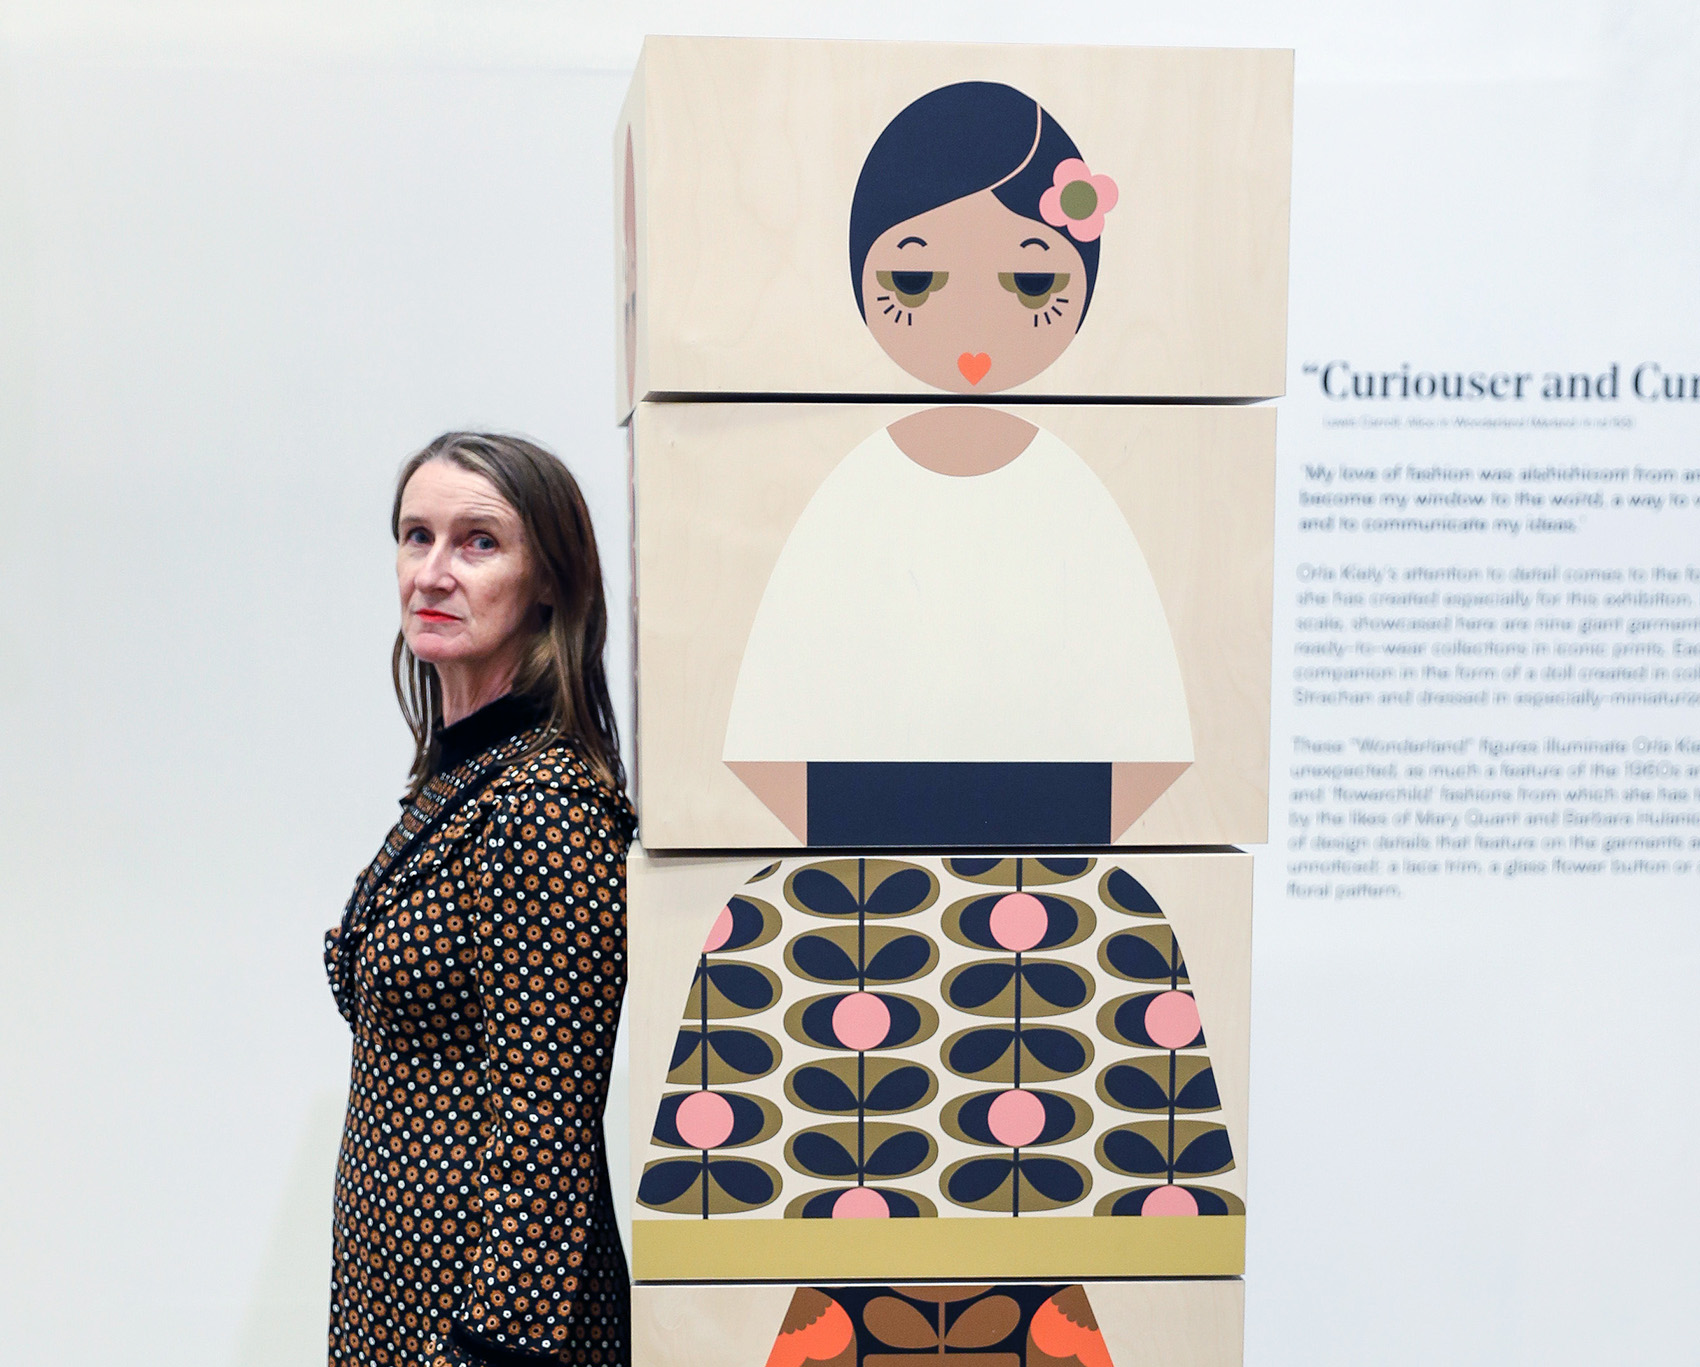 Exhibition Preview with Orla Kiely Image #0